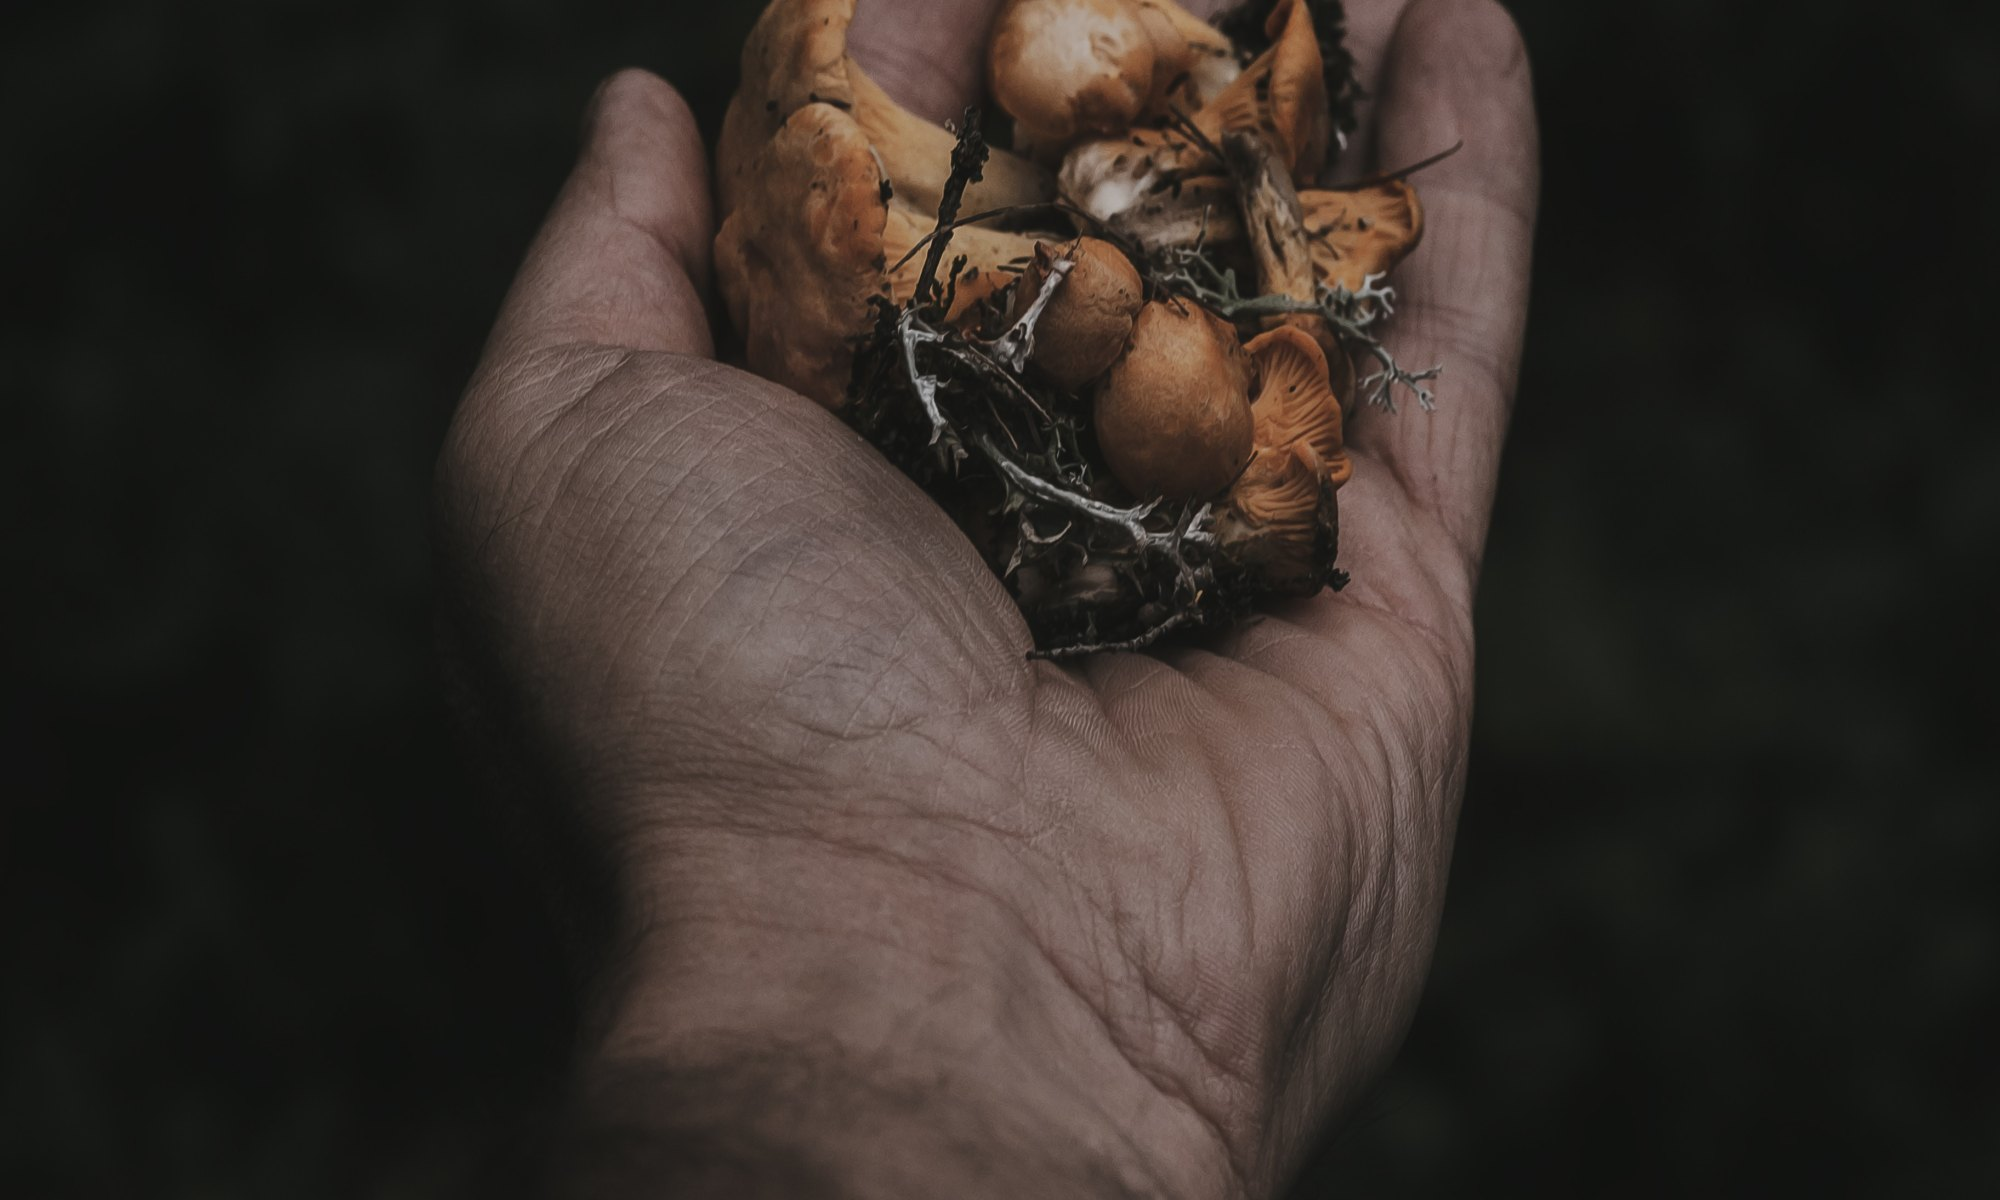 A man's hand holding magic mushrooms